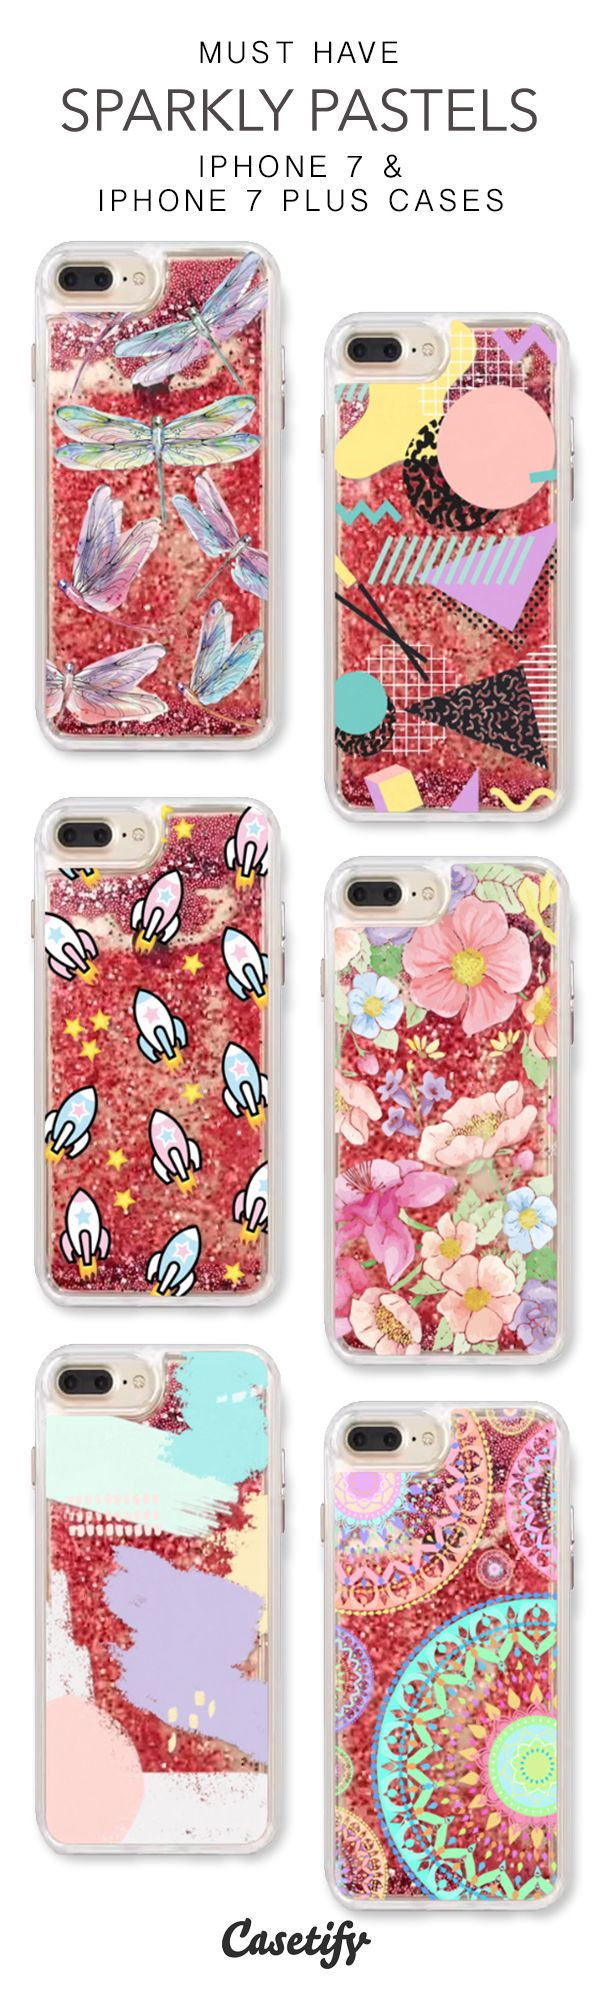 Must Have Sparkly Pastels iPhone 7 Cases & iPhone 7 Plus Cases. More protective liquid glitter colorful iPhone case here > https://www.casetify.com/en_US/collections/iphone-7-glitter-cases#/?vc=F7VltLWqrv